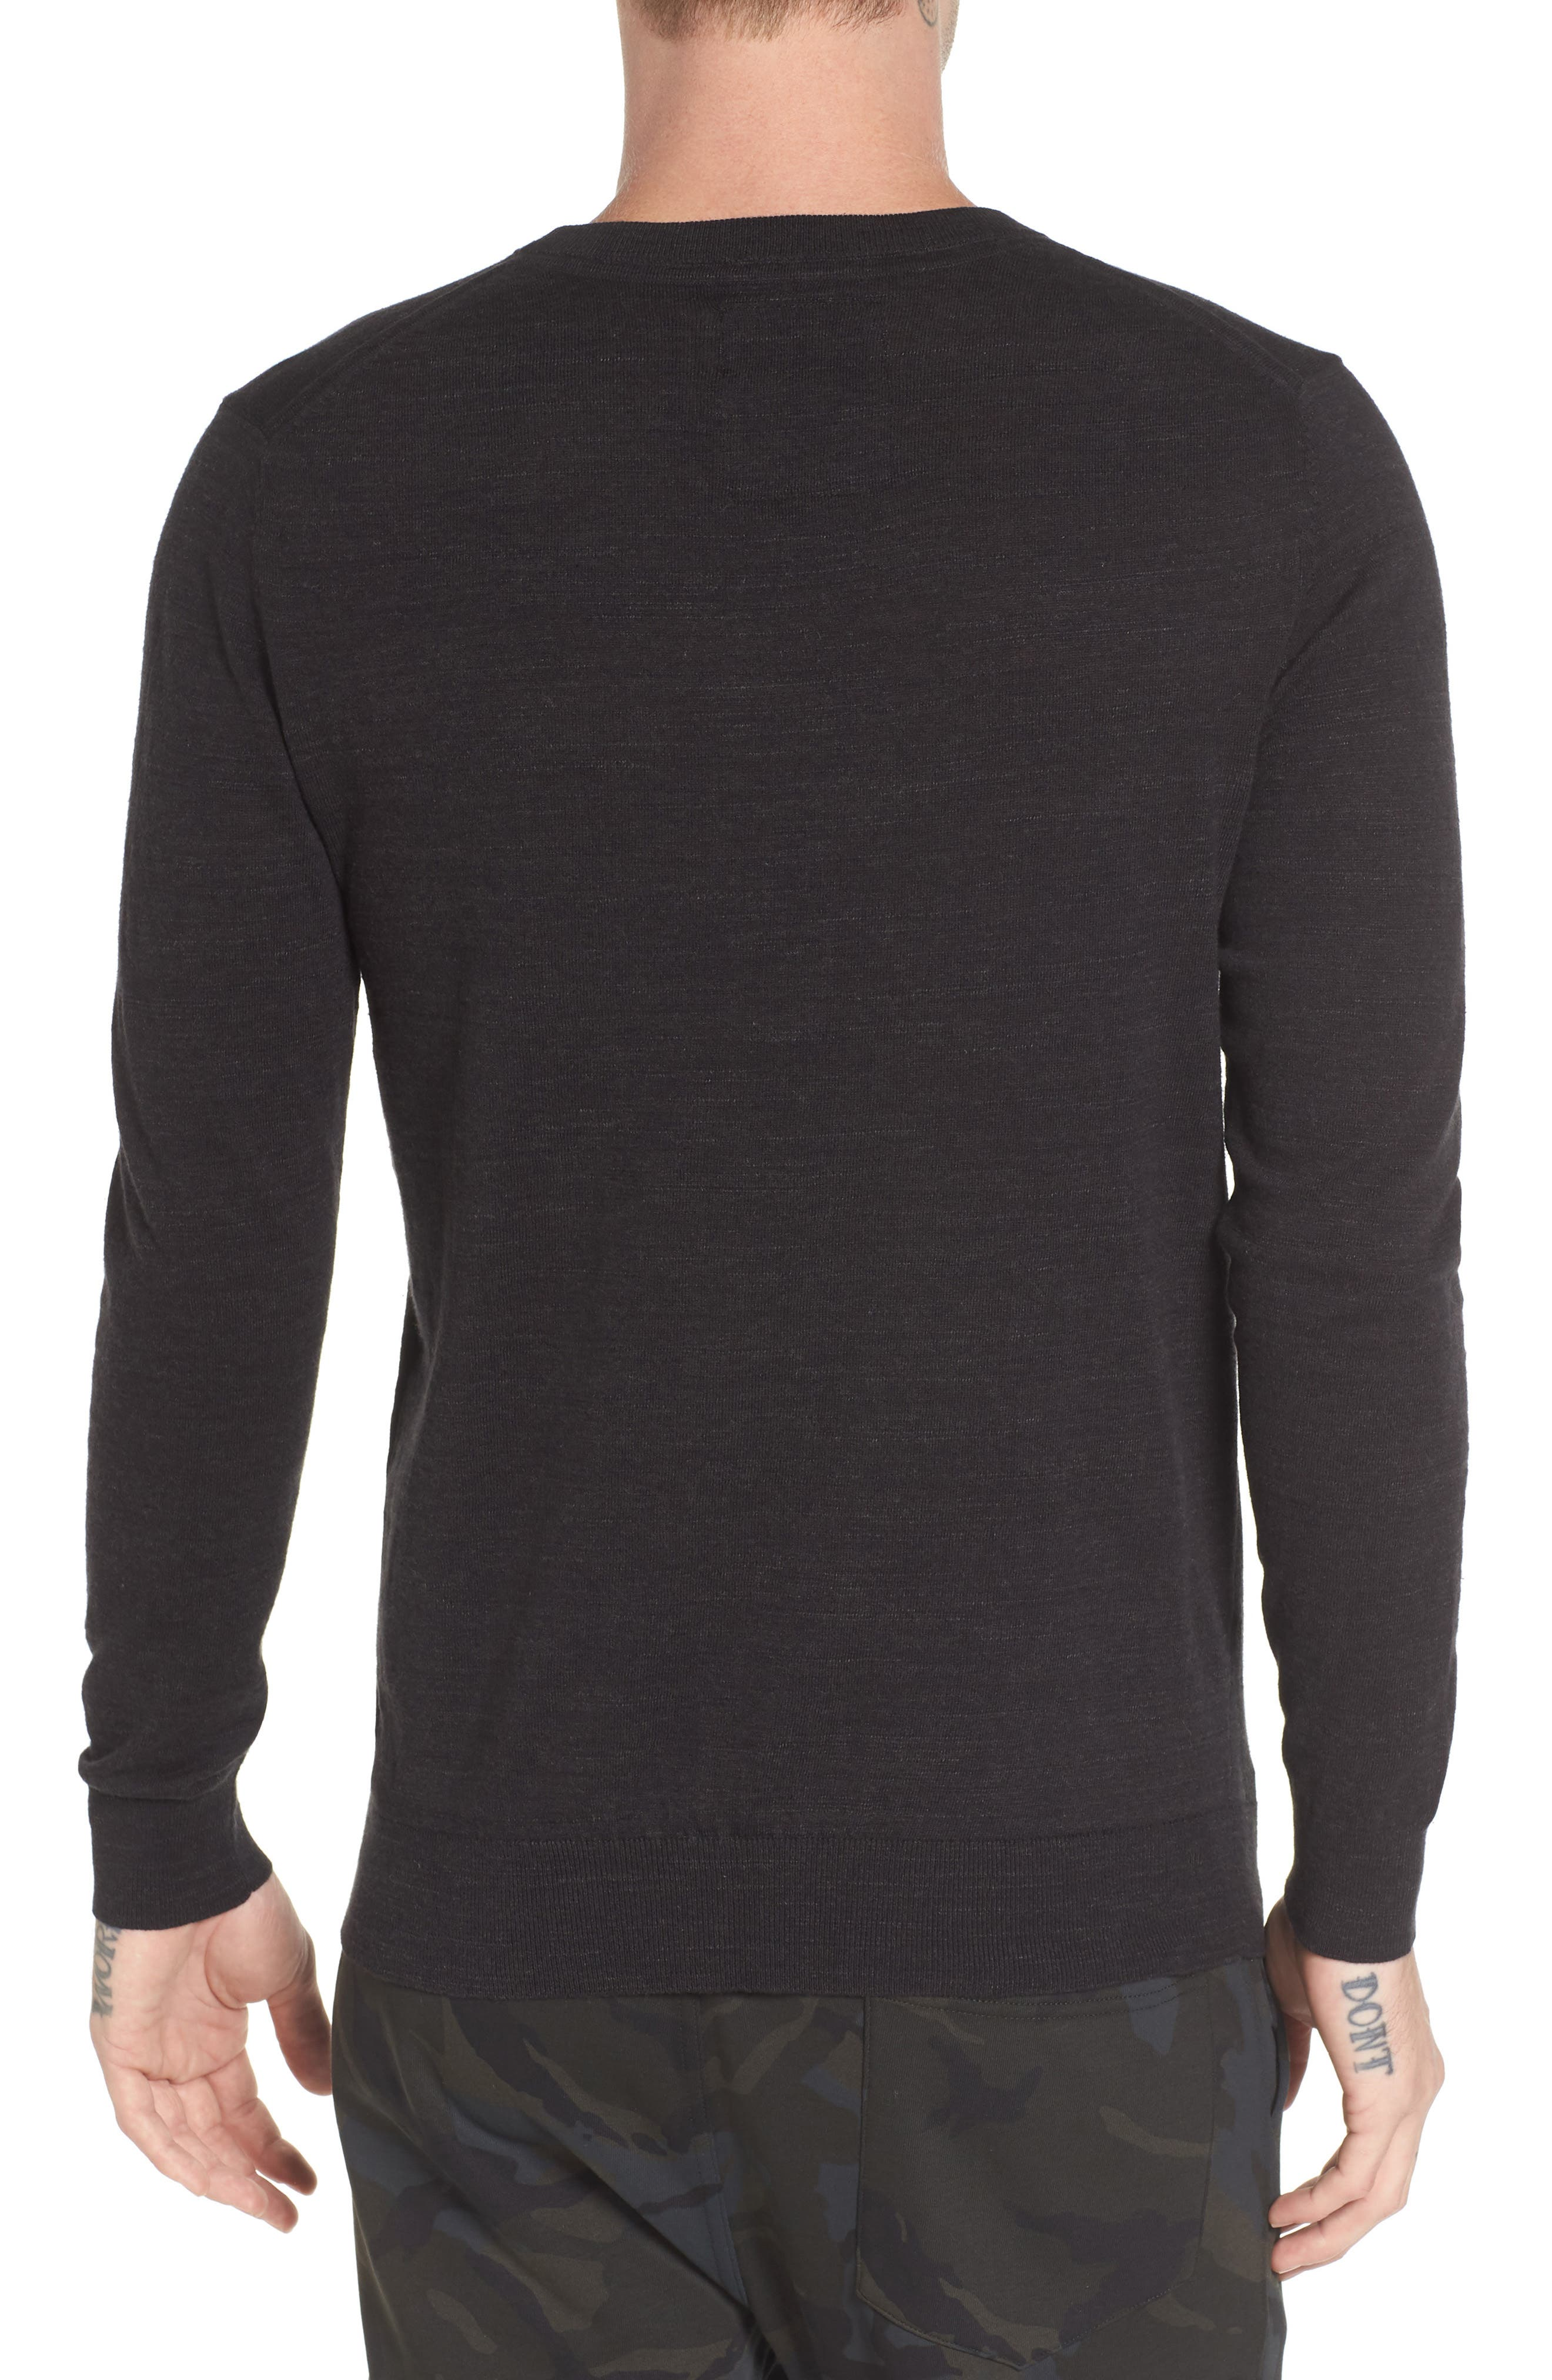 Core Sweater,                             Alternate thumbnail 2, color,                             Dark Black Heather